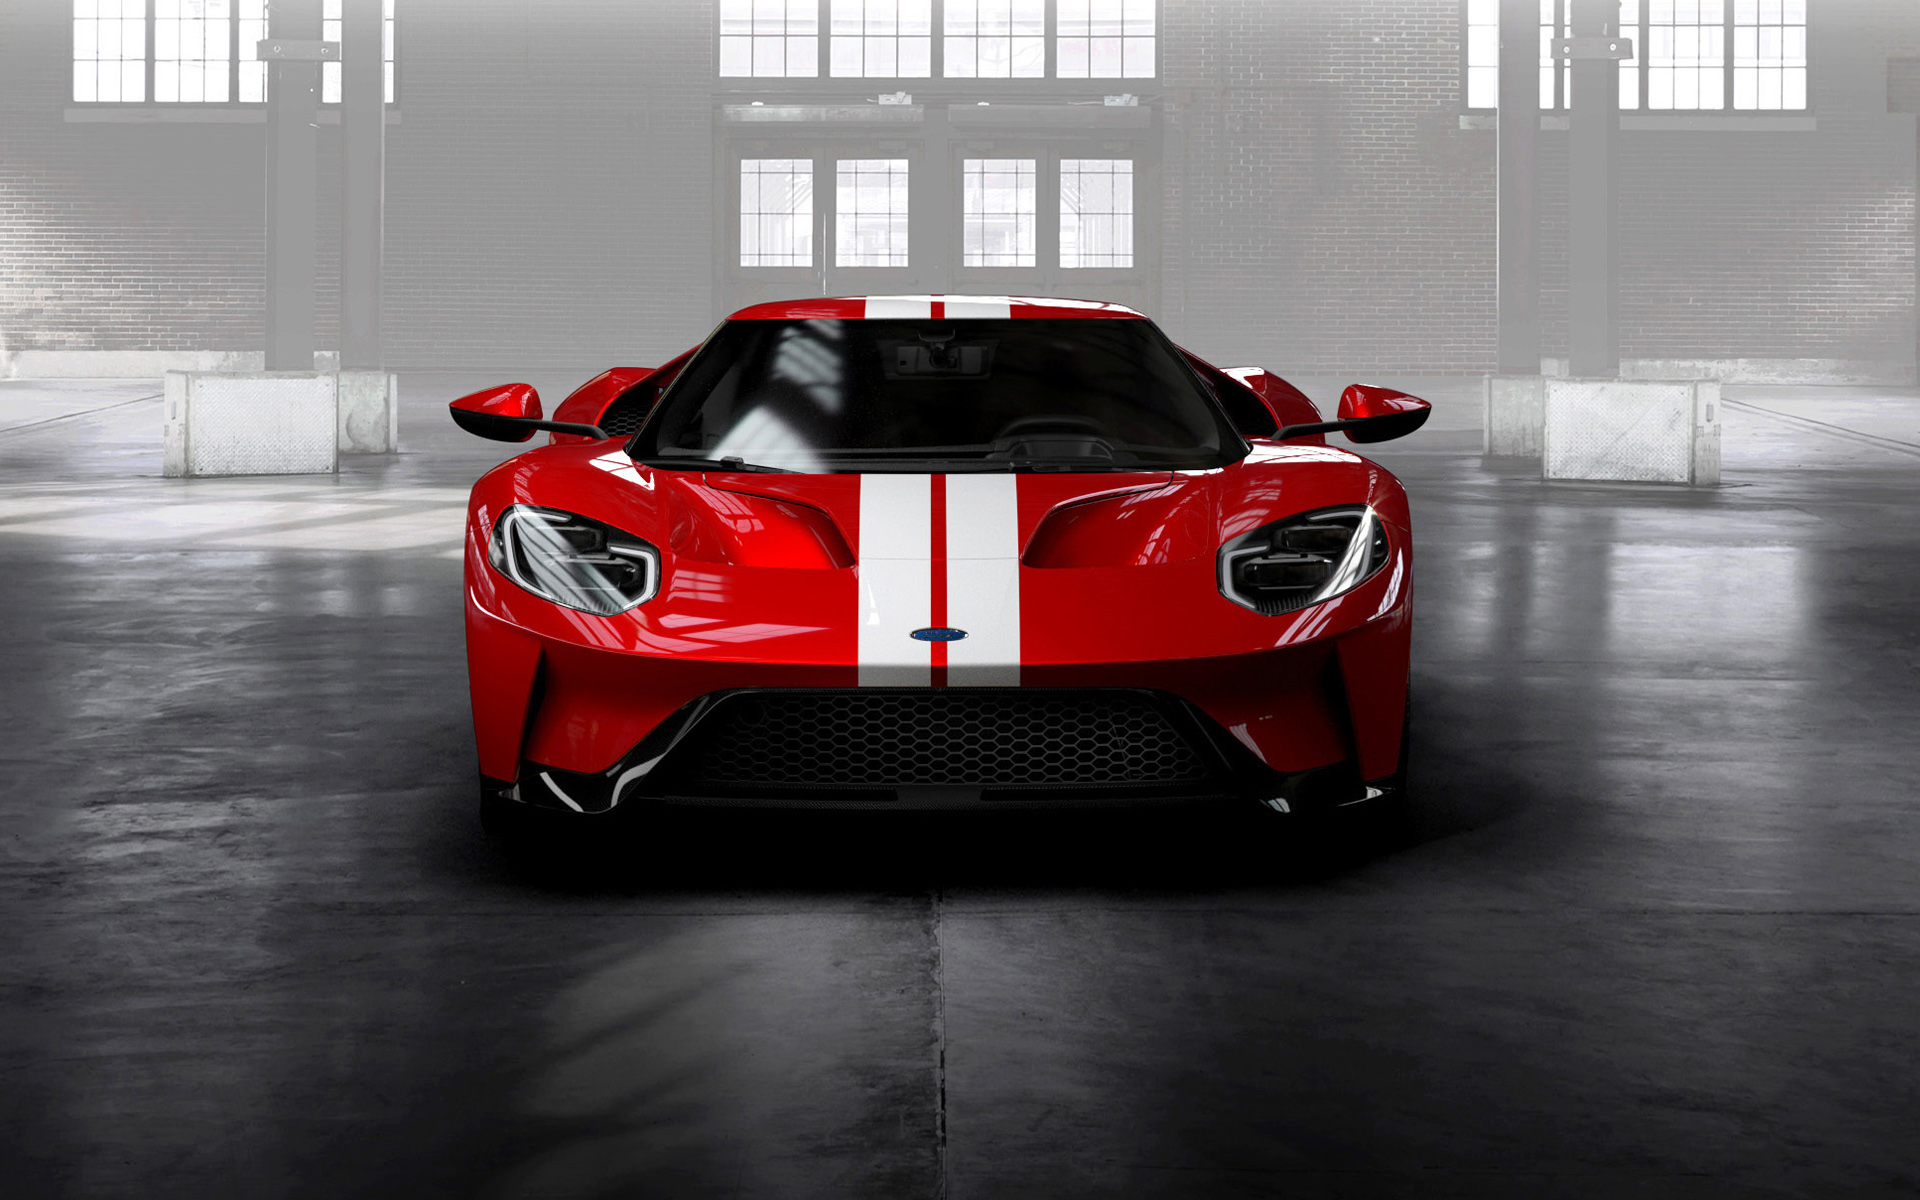 2017 Ford GT Red HD Wallpaper   iHD Wallpapers 1920x1200